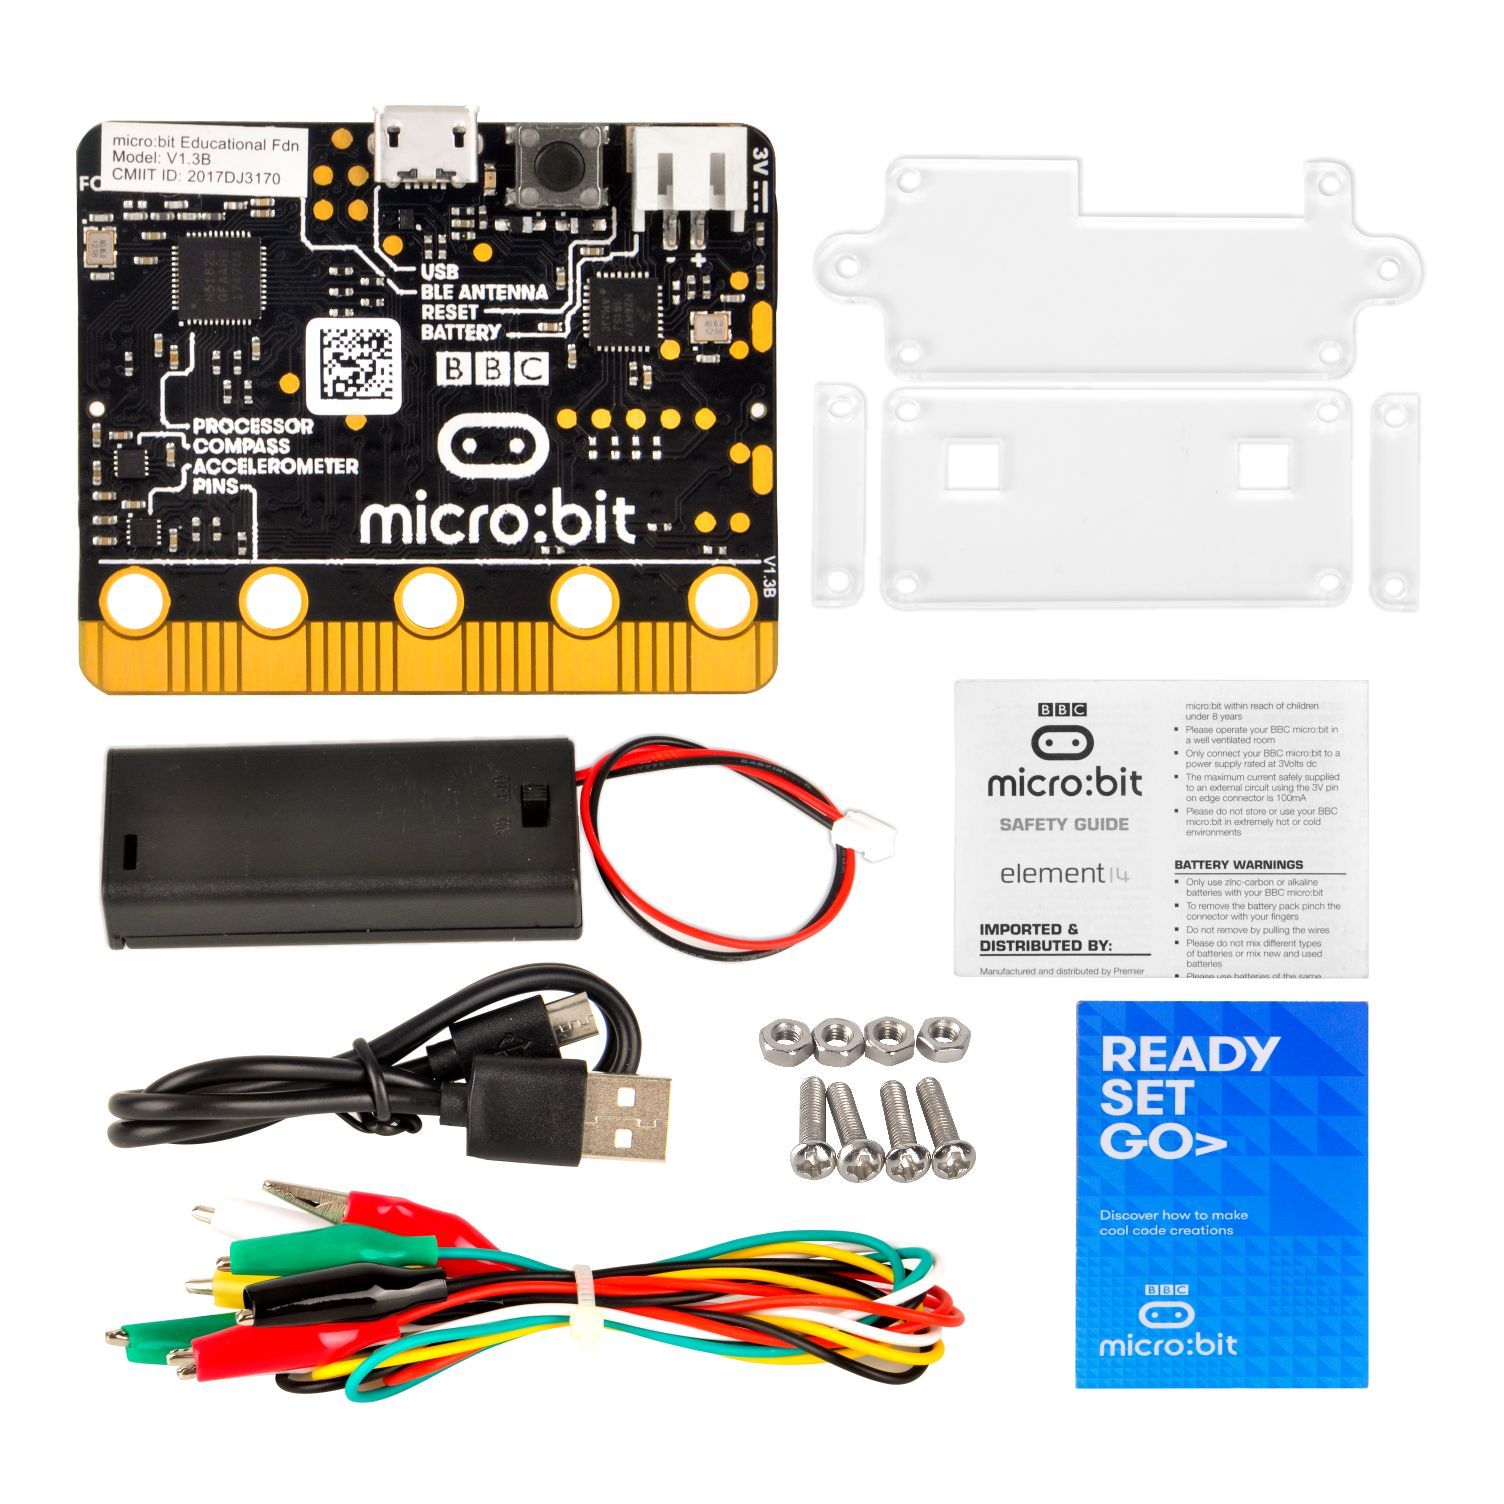 OSOYOO Basic Kit for Micro Bit User Guide